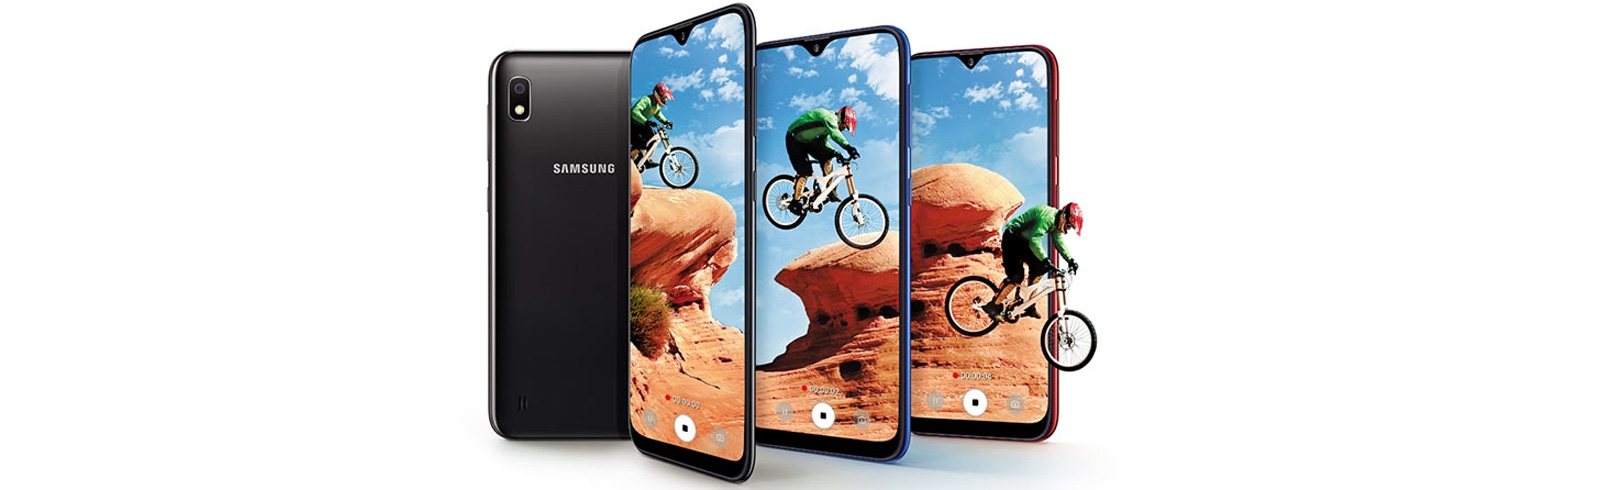 Samsung Galaxy A10 goes official in India powered by an Exynos 7884 chipset